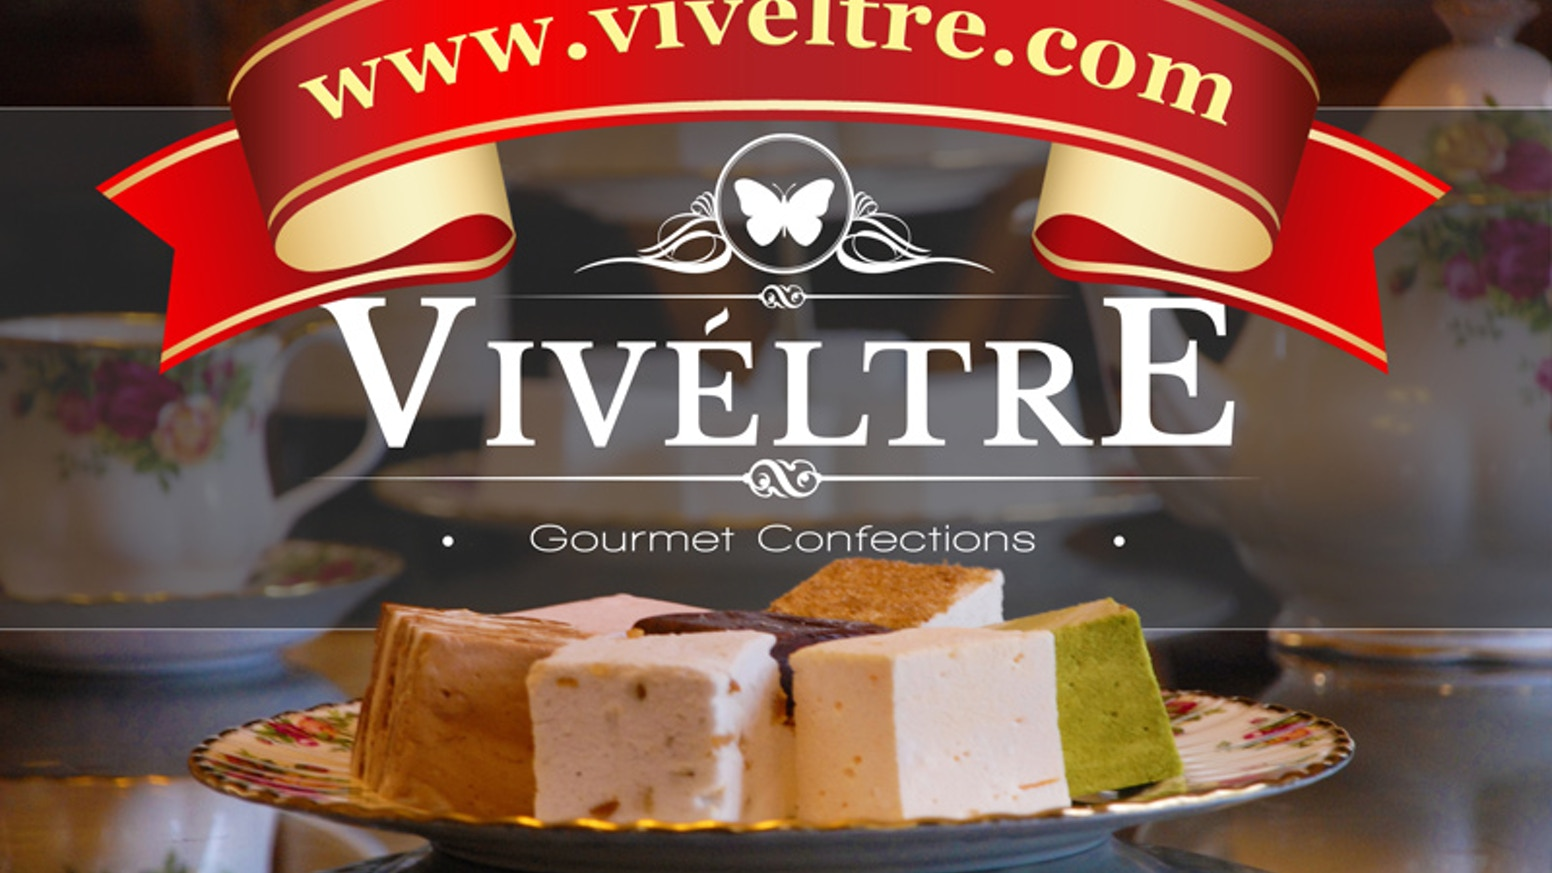 Viveltre Marshmallows are insanely delicious, irresistibly smooth, edible clouds of happiness. Always all-natural, always amazing!